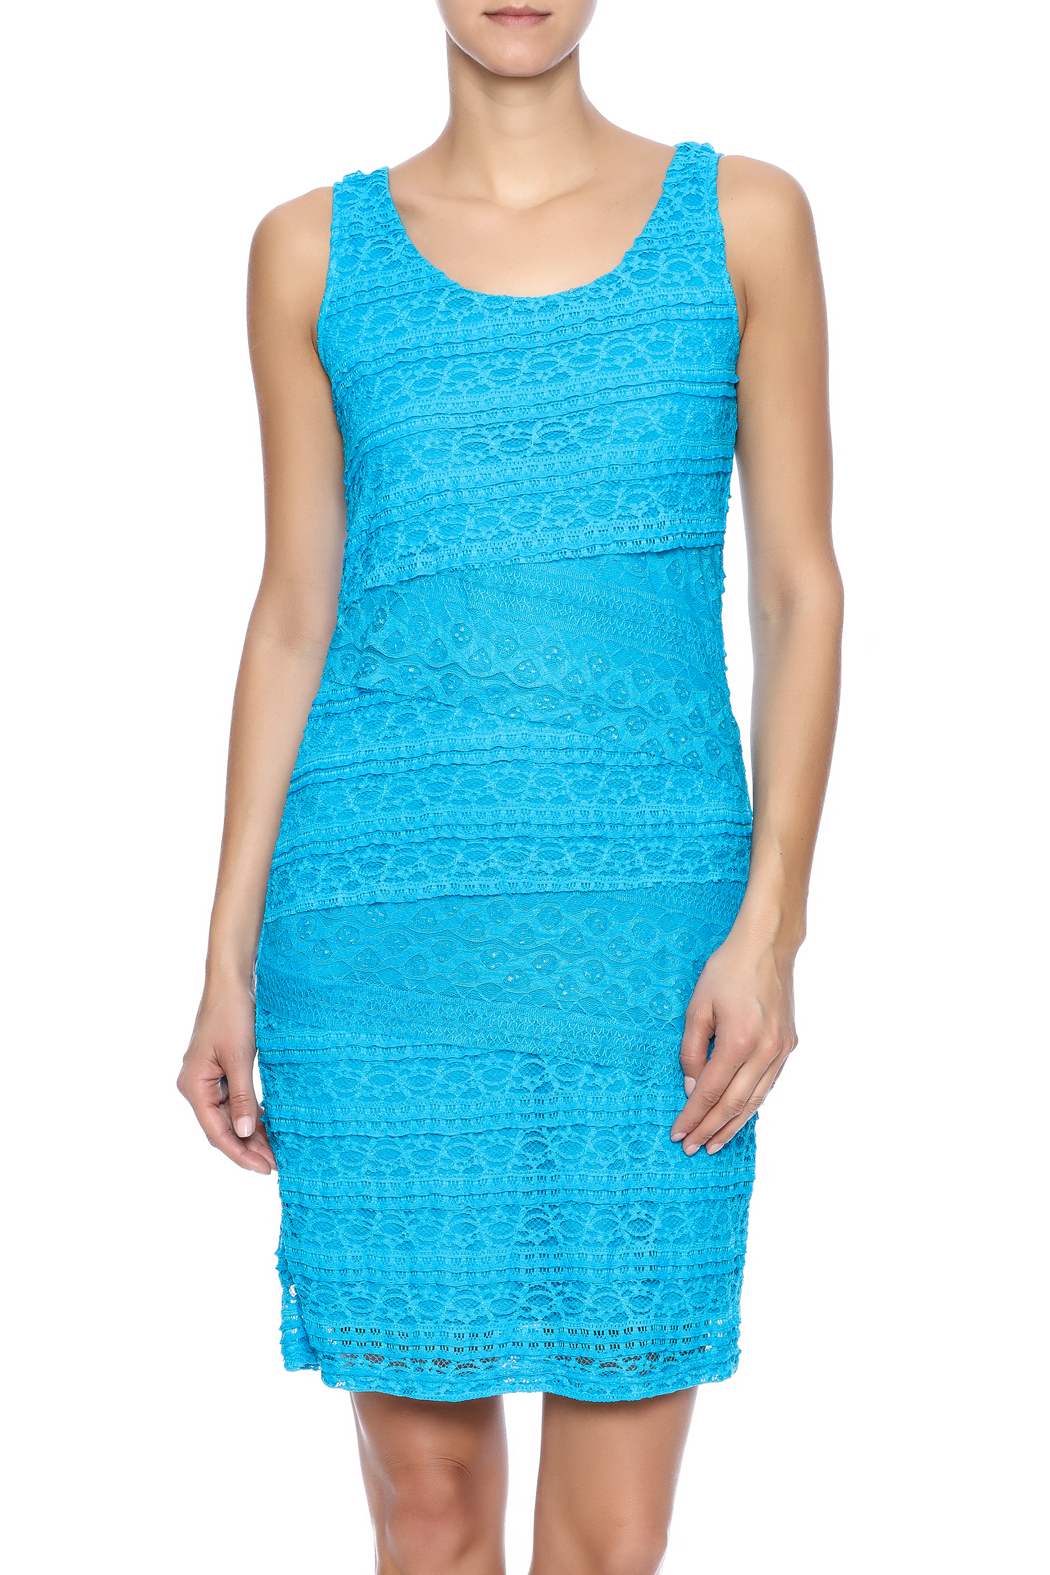 Michael Edwards Turquoise Lace Dress - Front Cropped Image